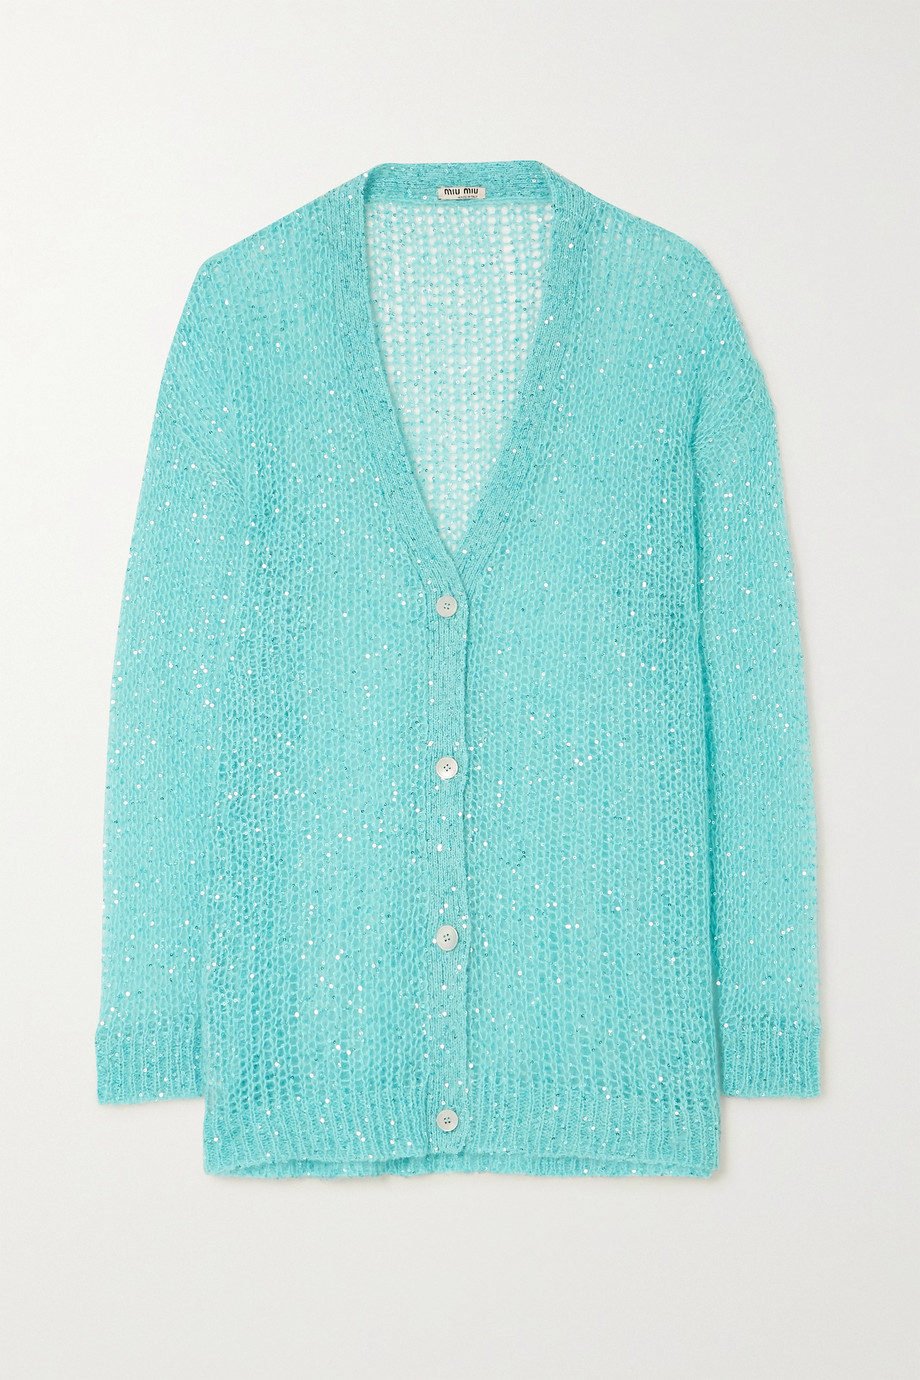 Miu Miu Sequined mohair-blend cardigan